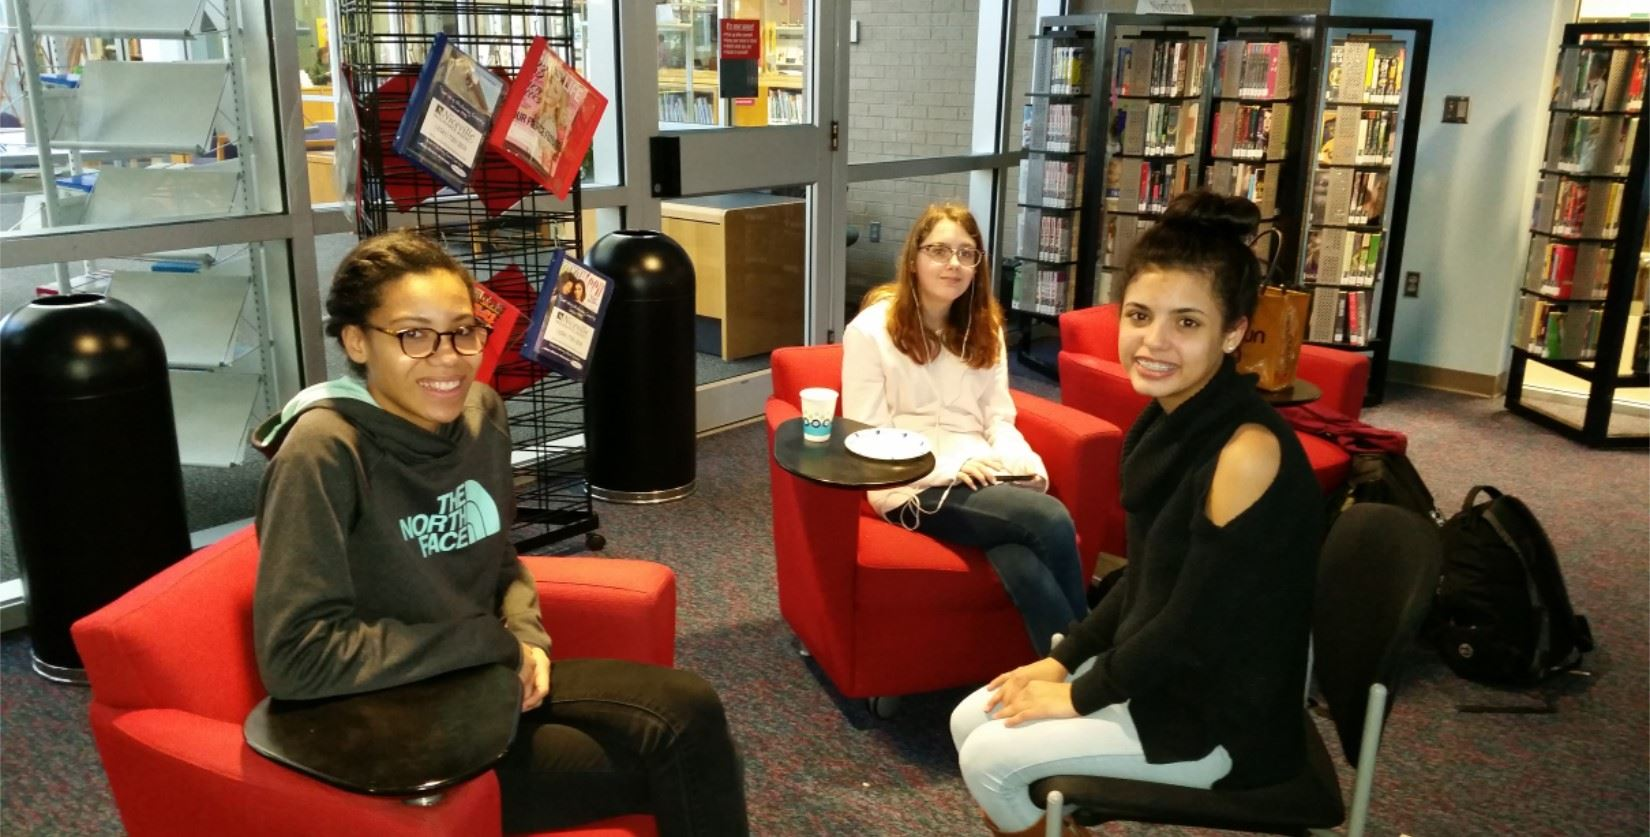 Friends relax after school in the Teen Space